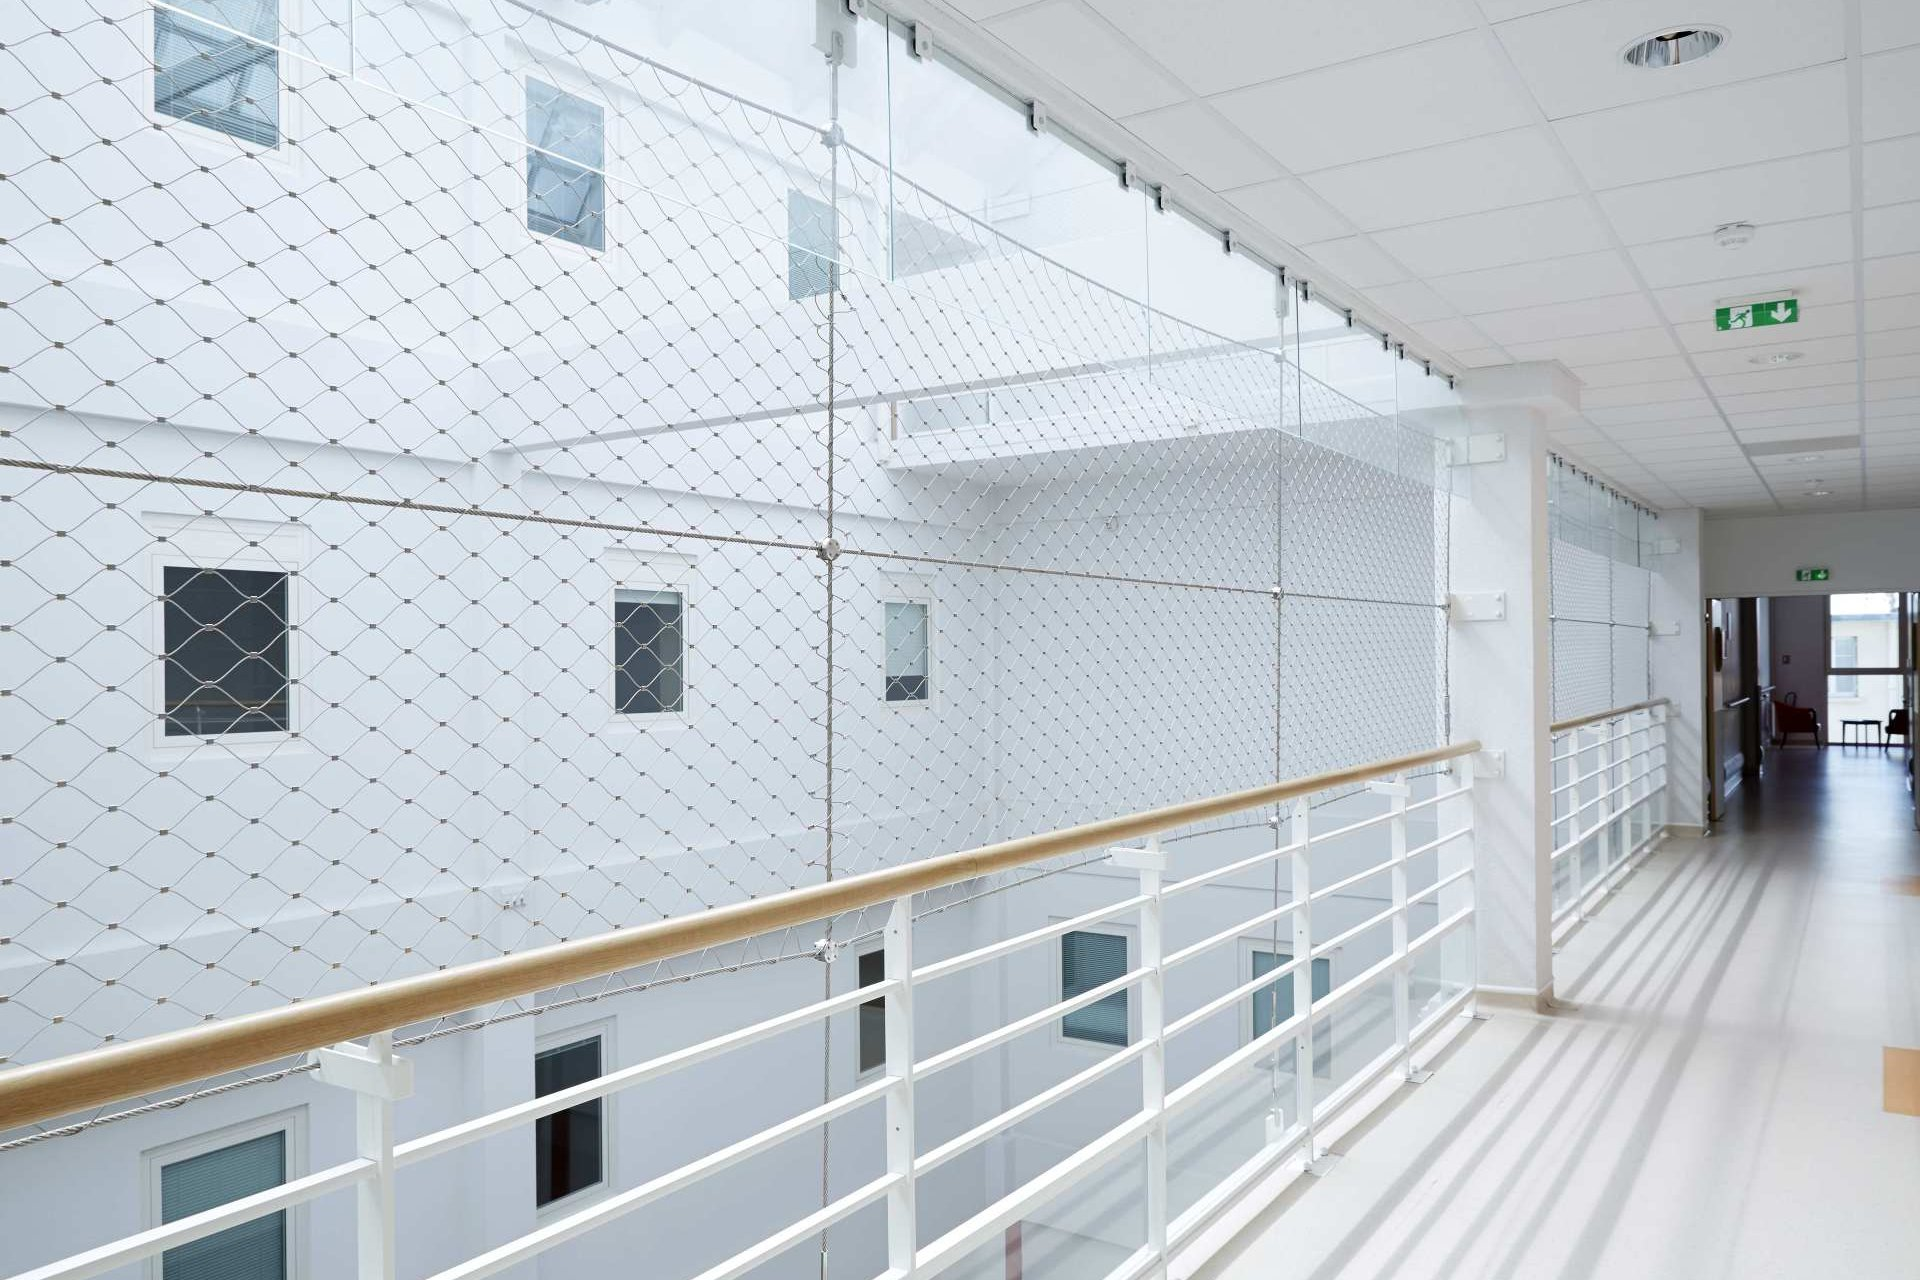 A Webnet security mesh on top of a balustrade in the rehab centre l'adapt in Châtillon, France